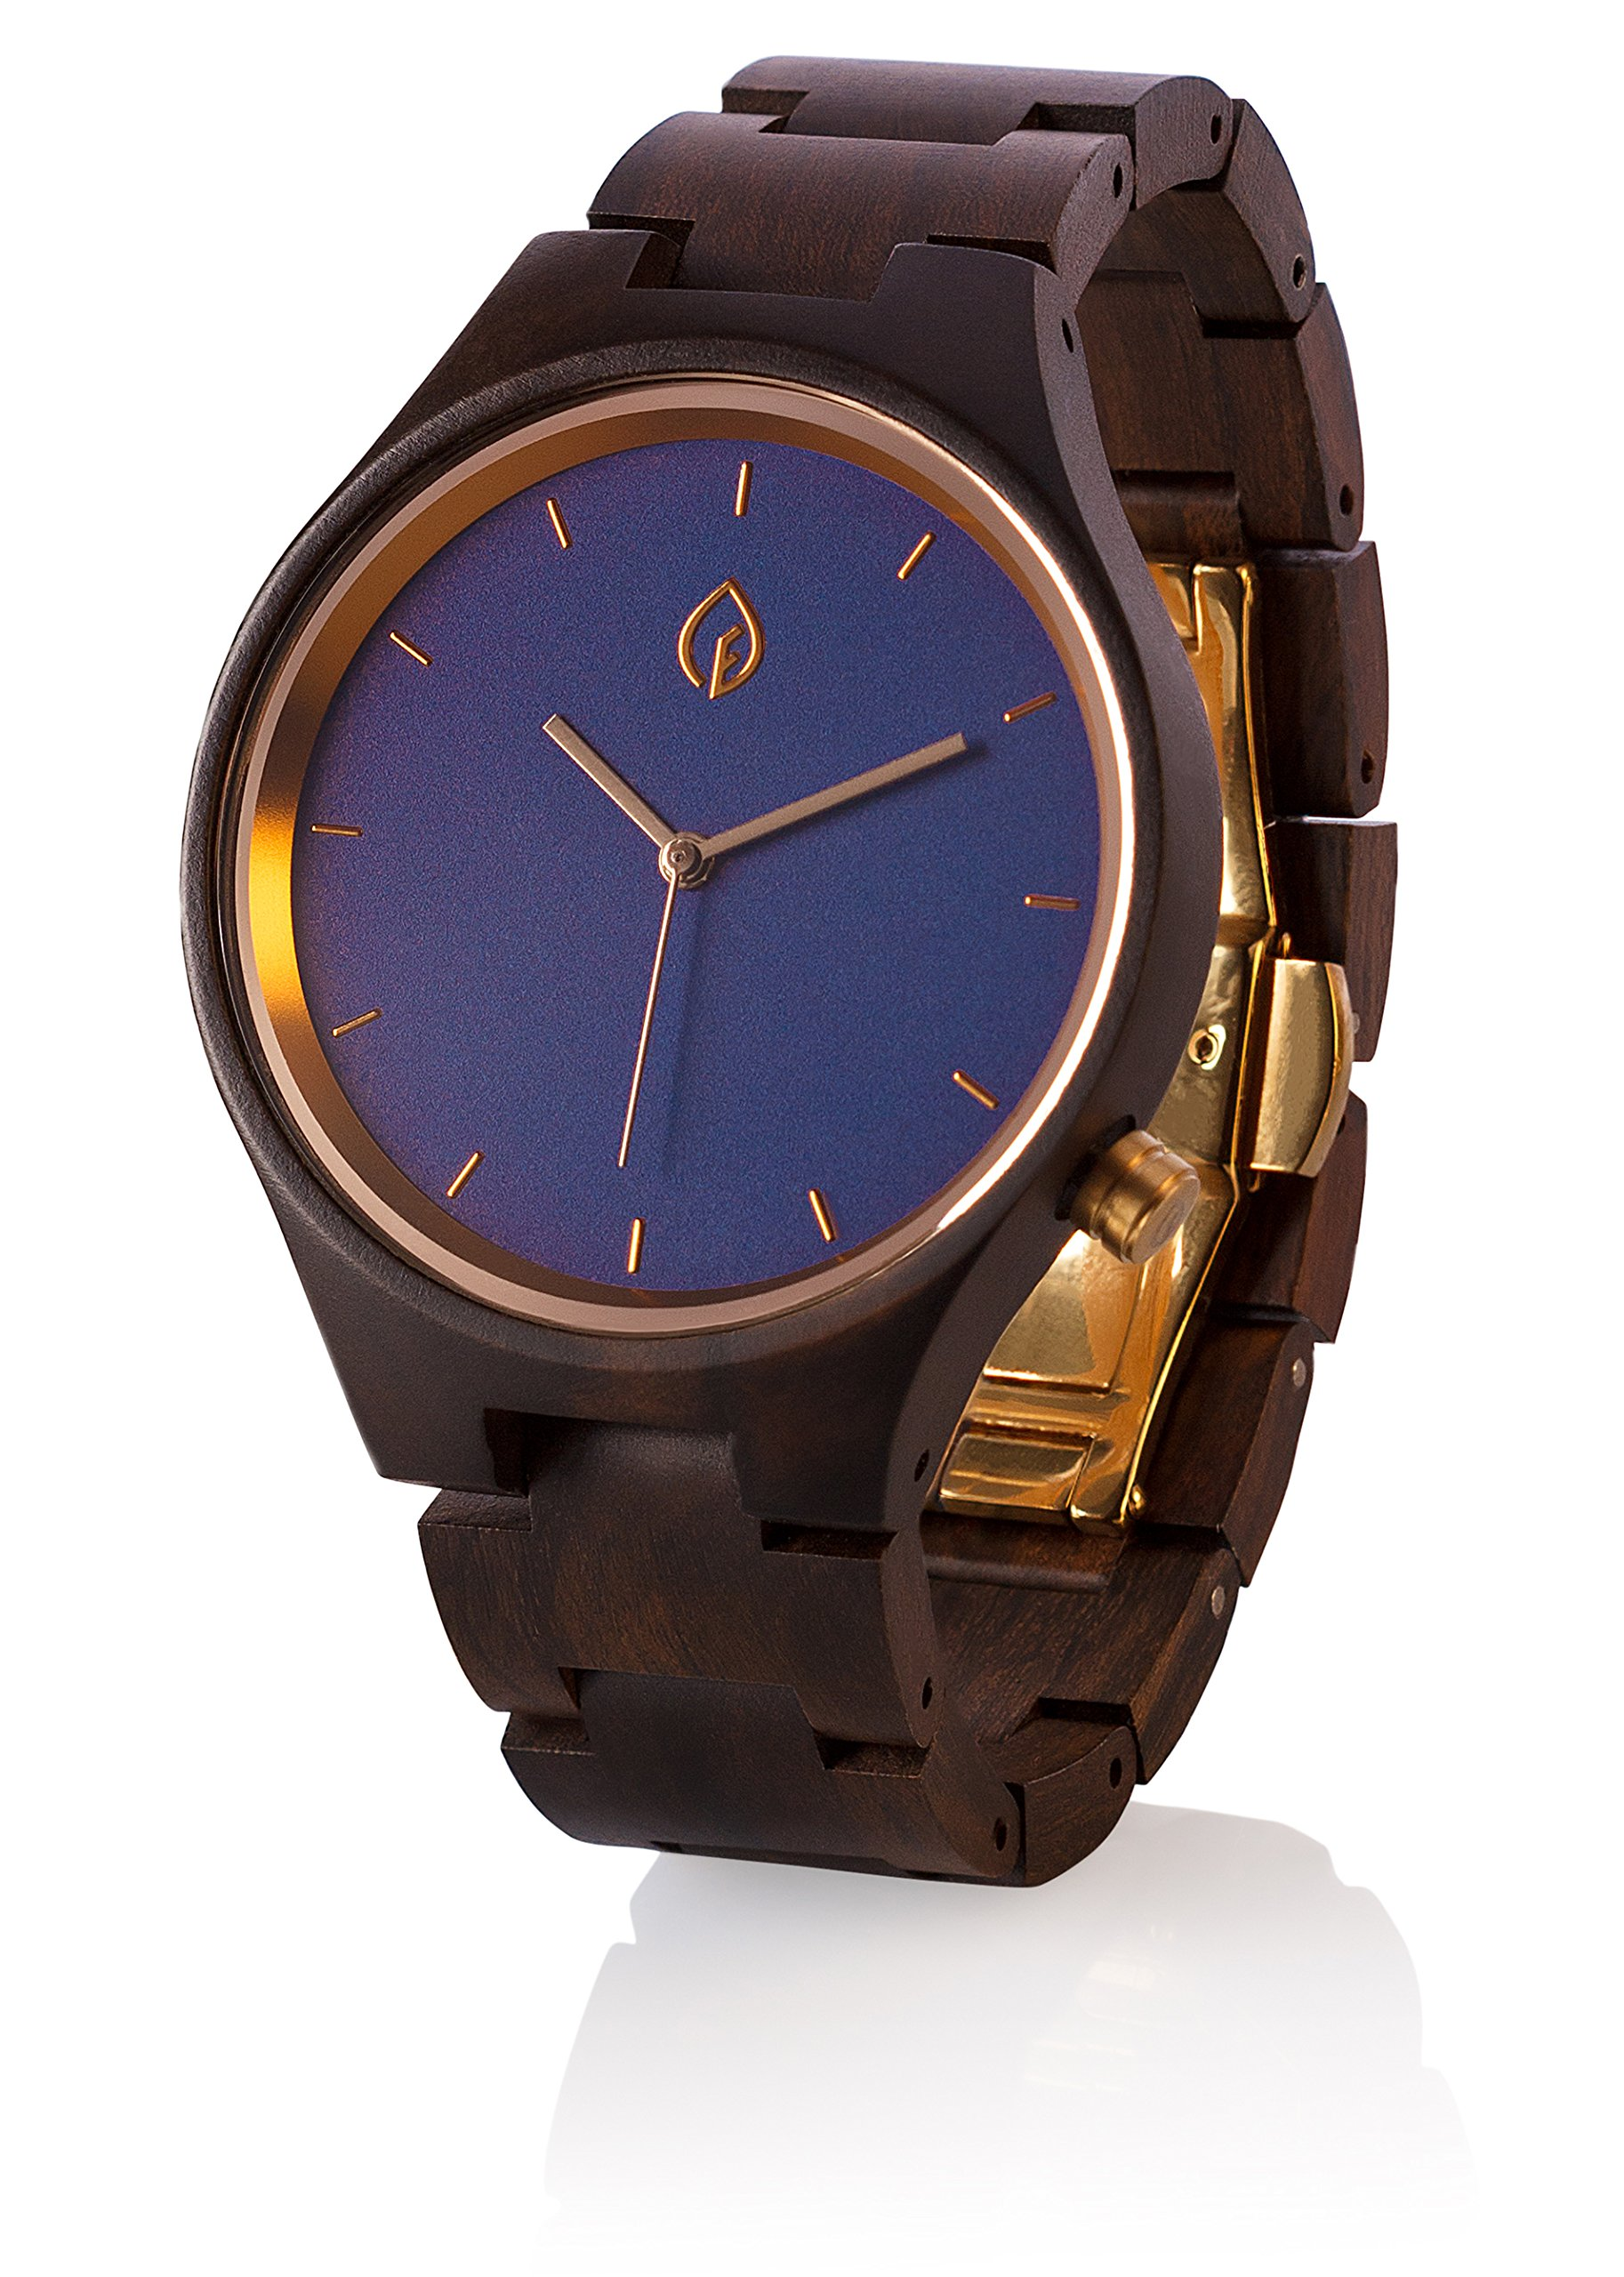 TheHrdwood Wooden Watch Wood Watch Groomsmen Gift, Boyfriend Gift, Father Gift Anniversary Gift for Men (Blue)